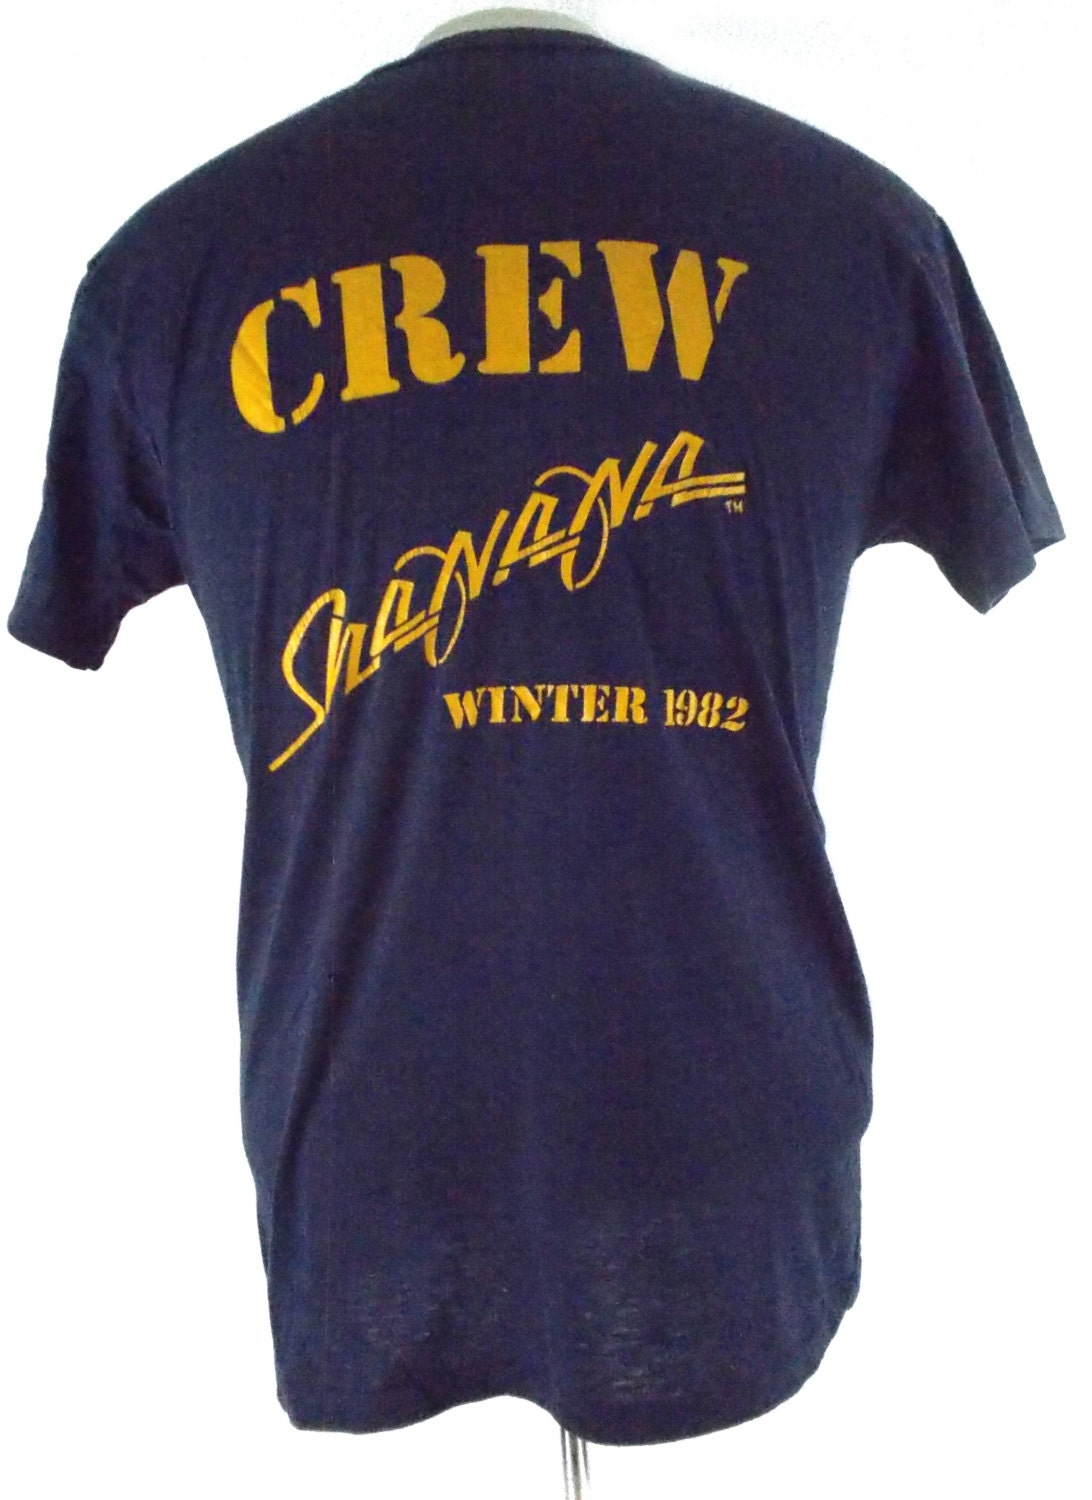 Sha Na Na 1982 I Outlived the Swill Crew Concert Local Vintage T Shirt Medium Large vFS4mAu